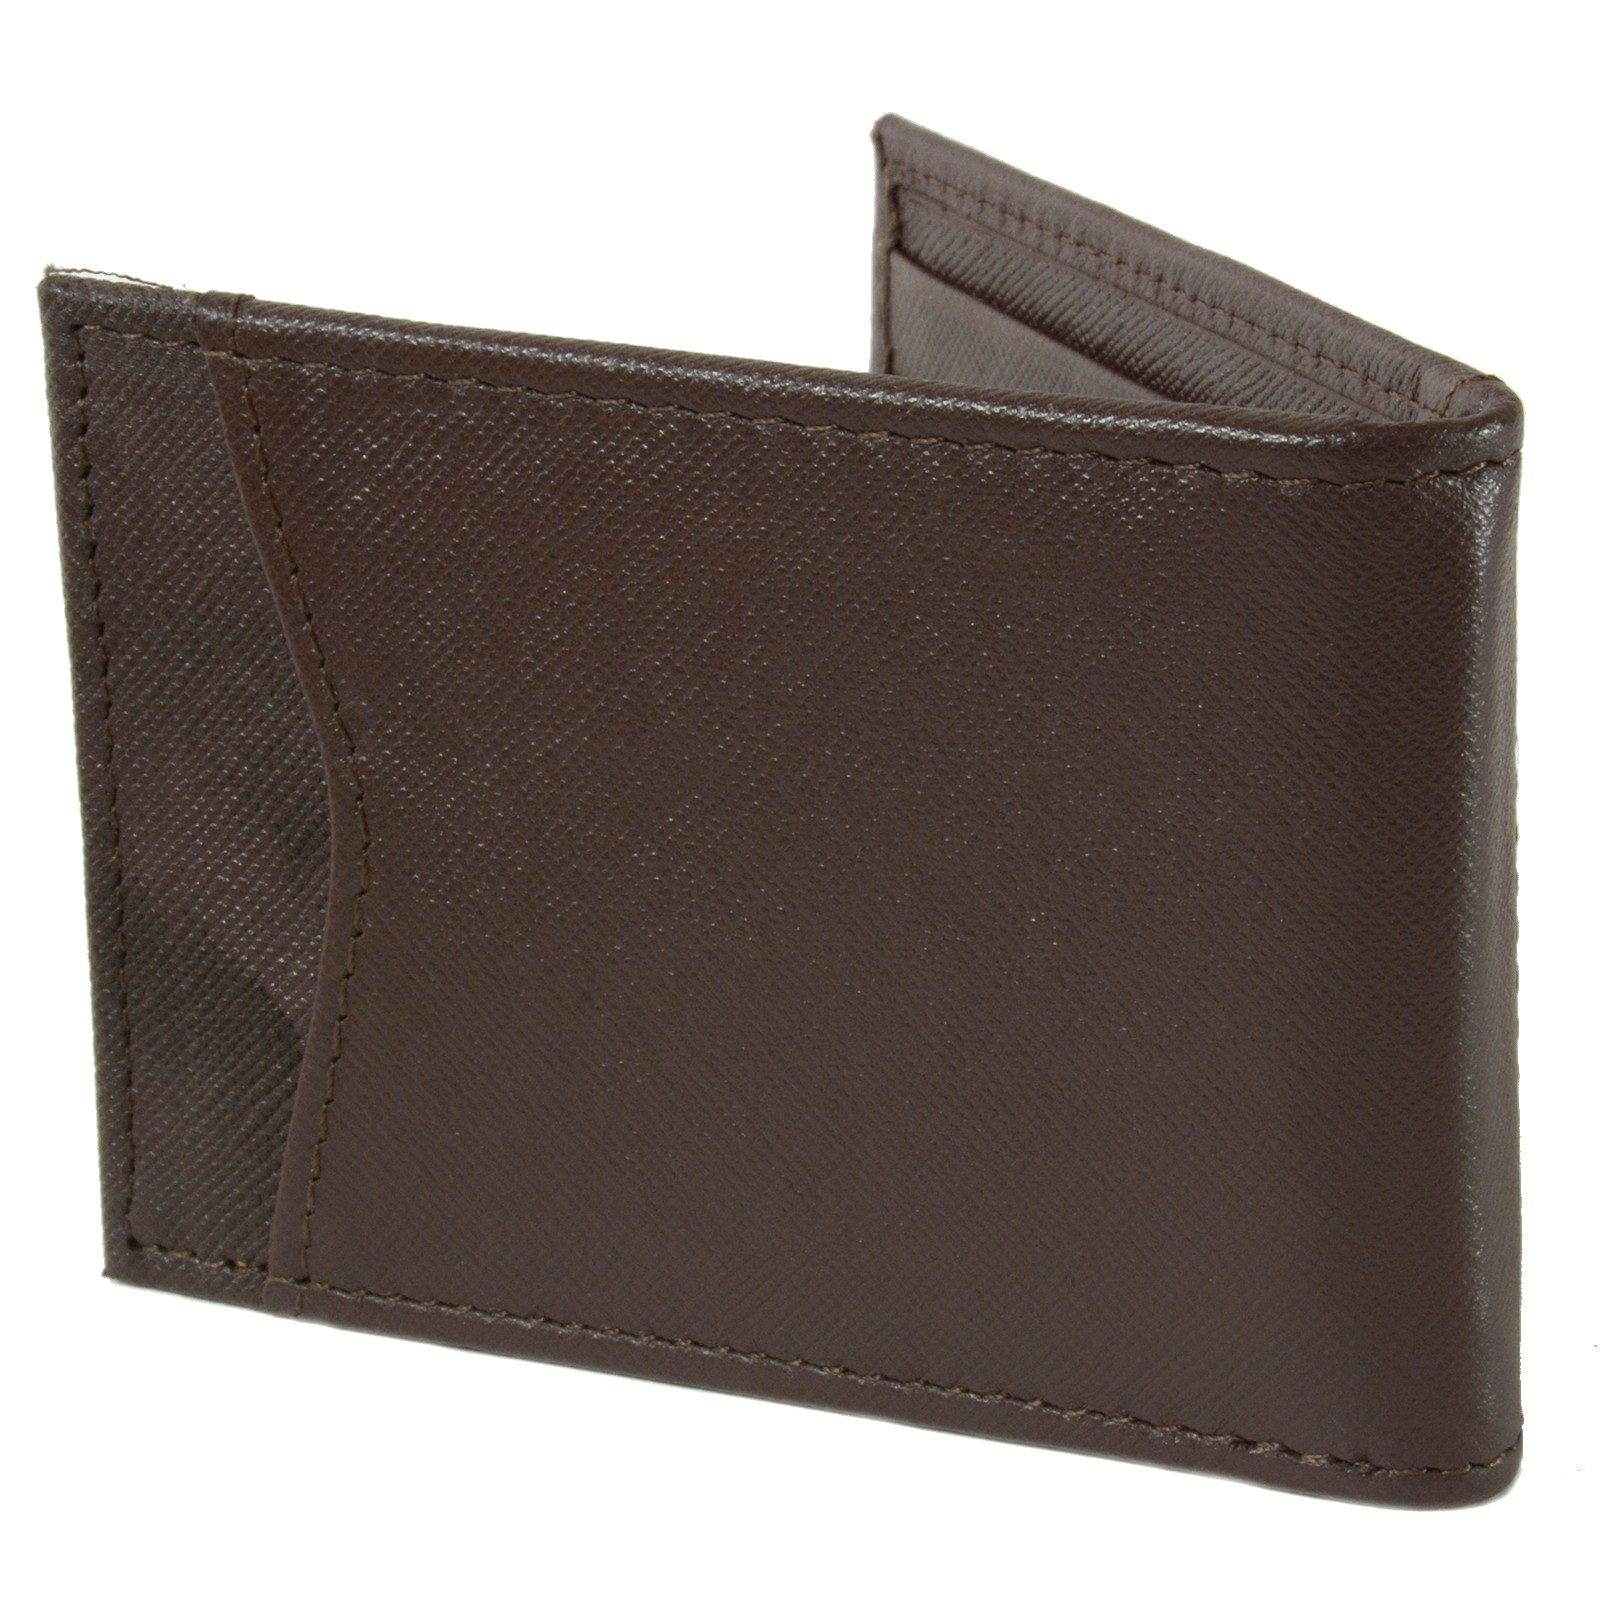 Alpine-Swiss-Mens-Bifold-Money-Clip-Spring-Loaded-Leather-ID-Front-Pocket-Wallet thumbnail 57